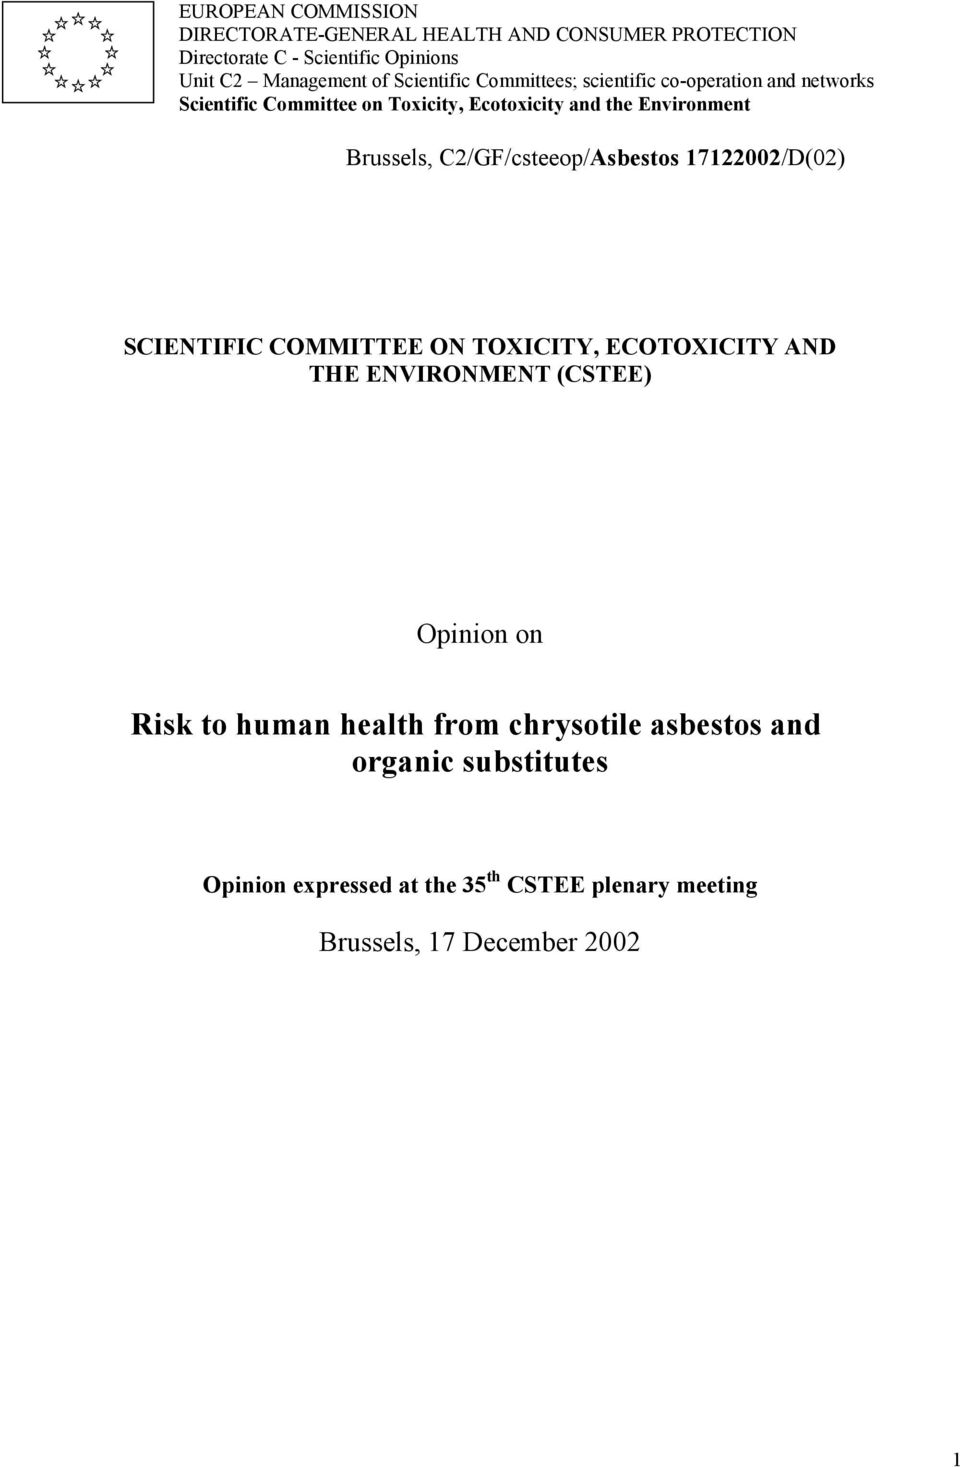 Brussels, C2/GF/csteeop/Asbestos 17122002/D(02) SCIENTIFIC COMMITTEE ON TOXICITY, ECOTOXICITY AND THE ENVIRONMENT (CSTEE) Opinion on